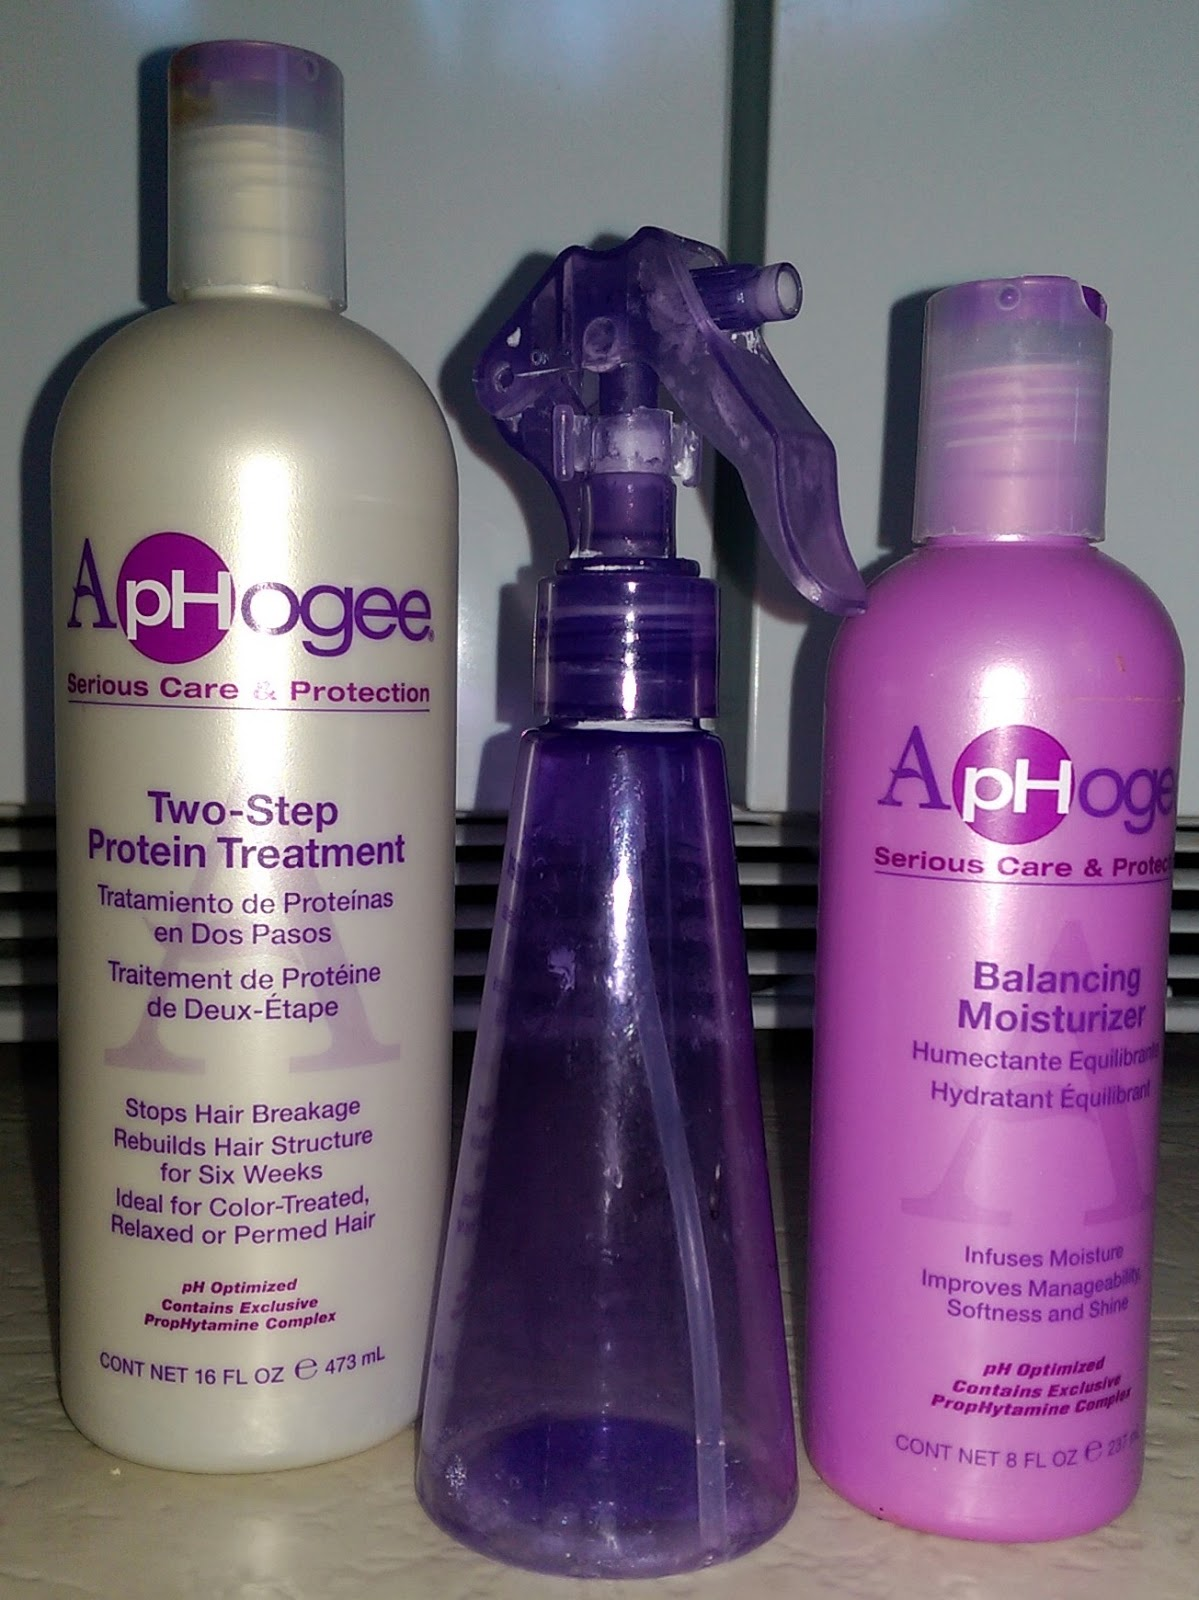 Is Aphogee Products Good For Natural Hair